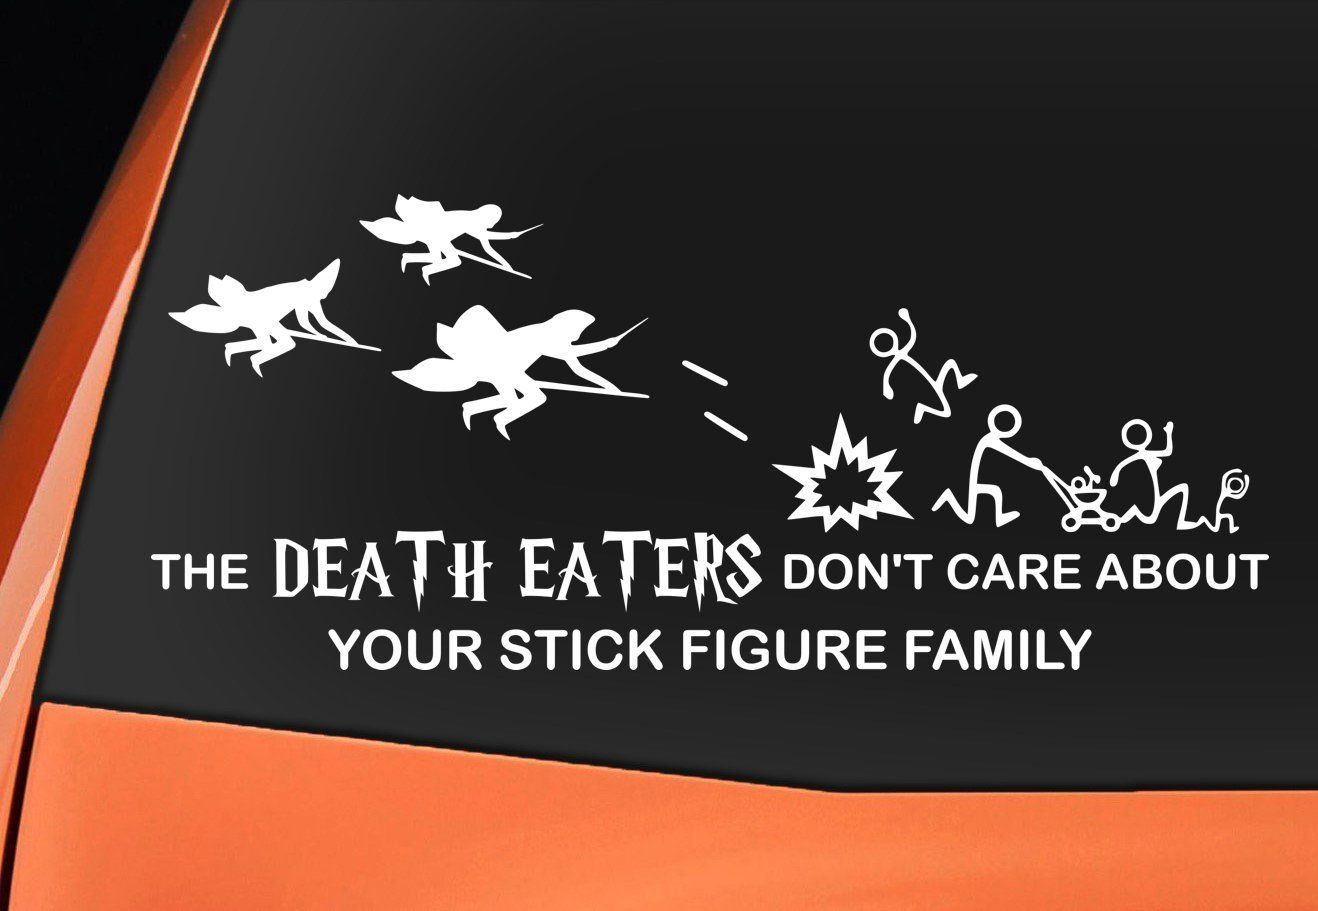 Harry Potter Inspired The Death Eaters Don T Care About Your Stick Figure Family Vinyl Decal Sticke Stick Figure Family Harry Potter Car Harry Potter Friends [ 911 x 1318 Pixel ]